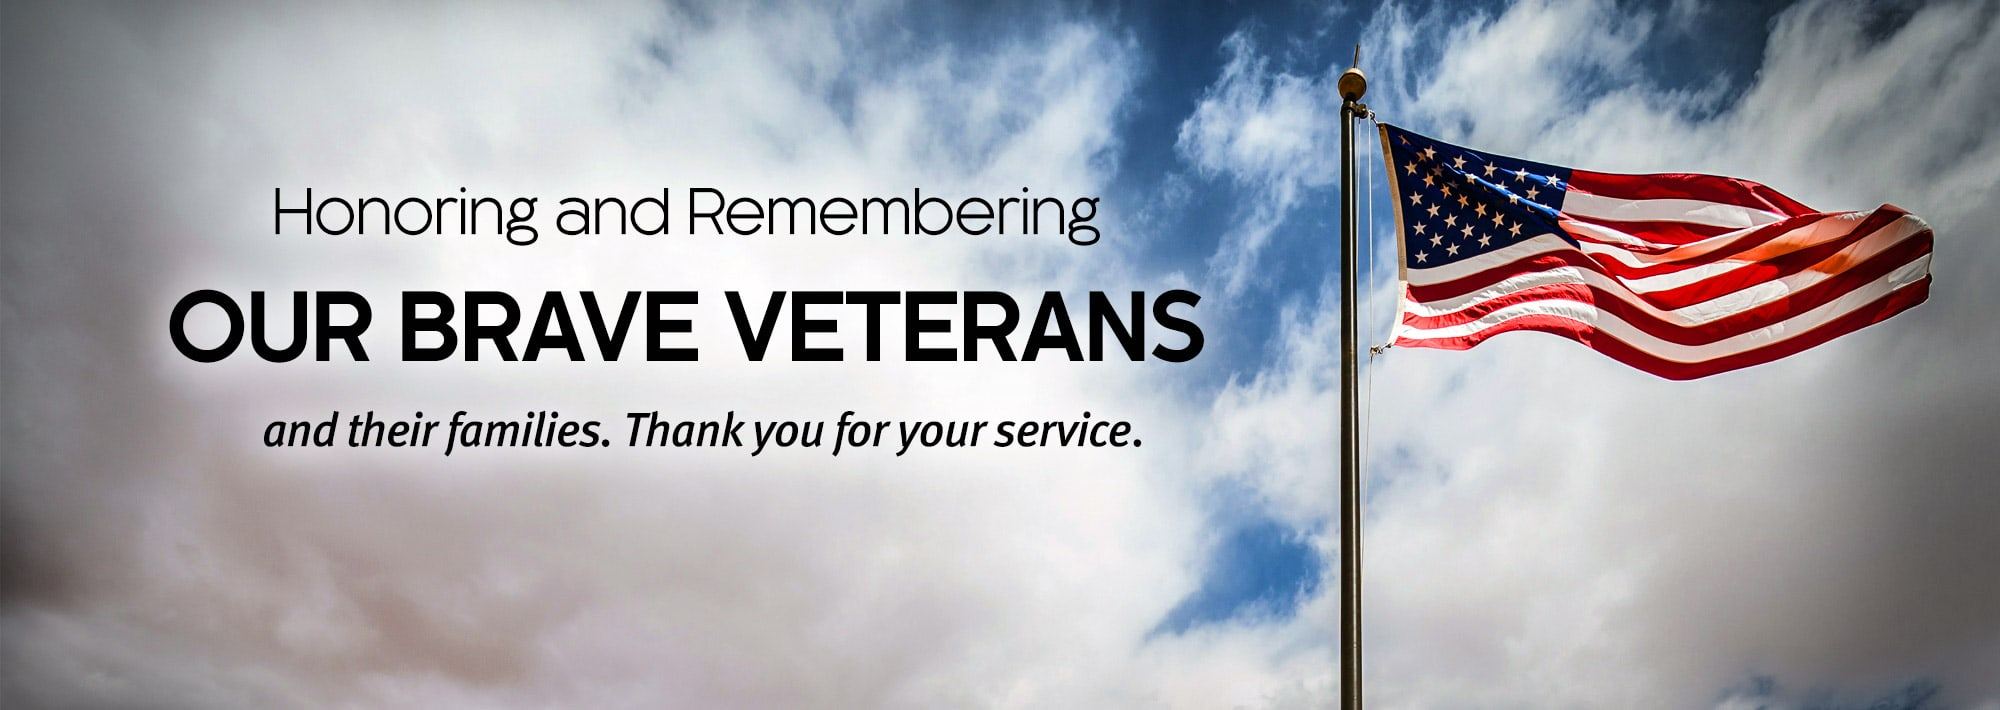 Honoring and Remembering our brave veterans and their families. Thank you for your service.